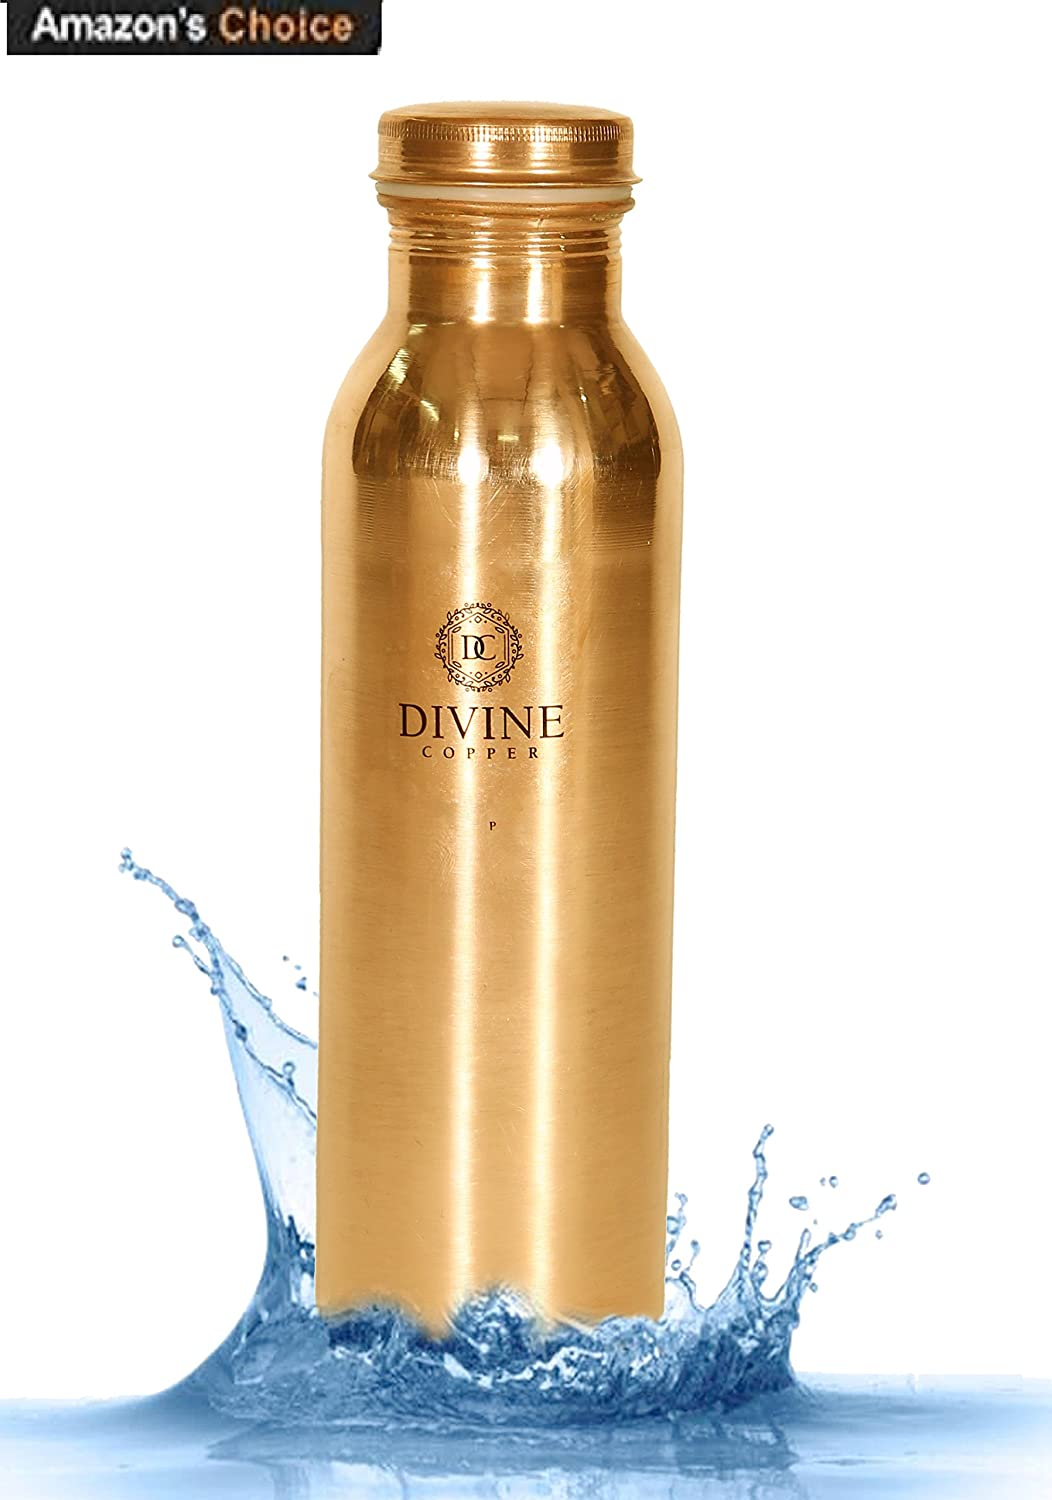 Upto 50% Off On Drinkware By Amazon | Divine Copper 100% Pure Handmade Copper Bottle-1000ml, Leak Proof & Joint Free for Ayurvedic Health Benefits @ Rs.599